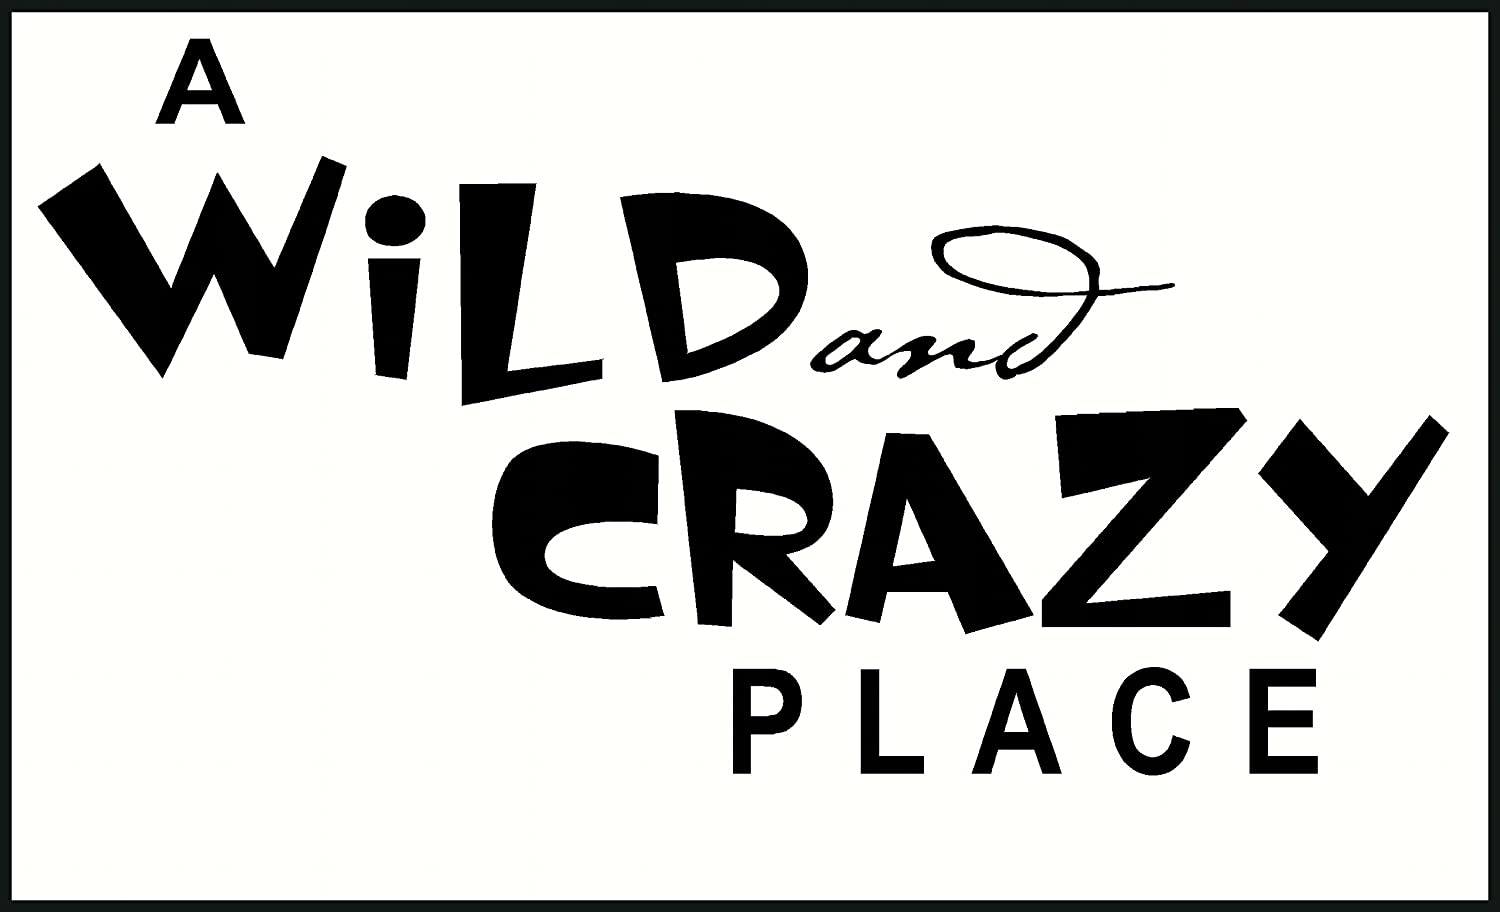 Wall Decor Plus More A Wild And Crazy Place Wall Sticker Saying for Nursery or Kids Room Decor 23W x 12H Black Black